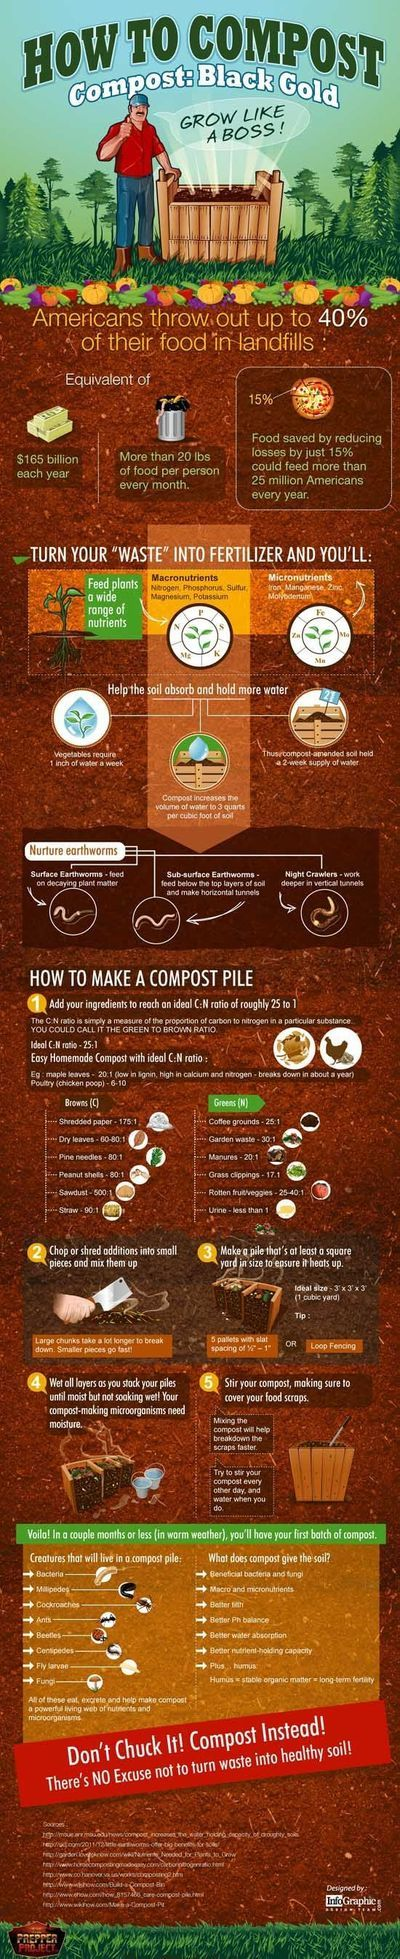 If you are a NEWBIE to composting, here's a helpful graphic of How To Compost